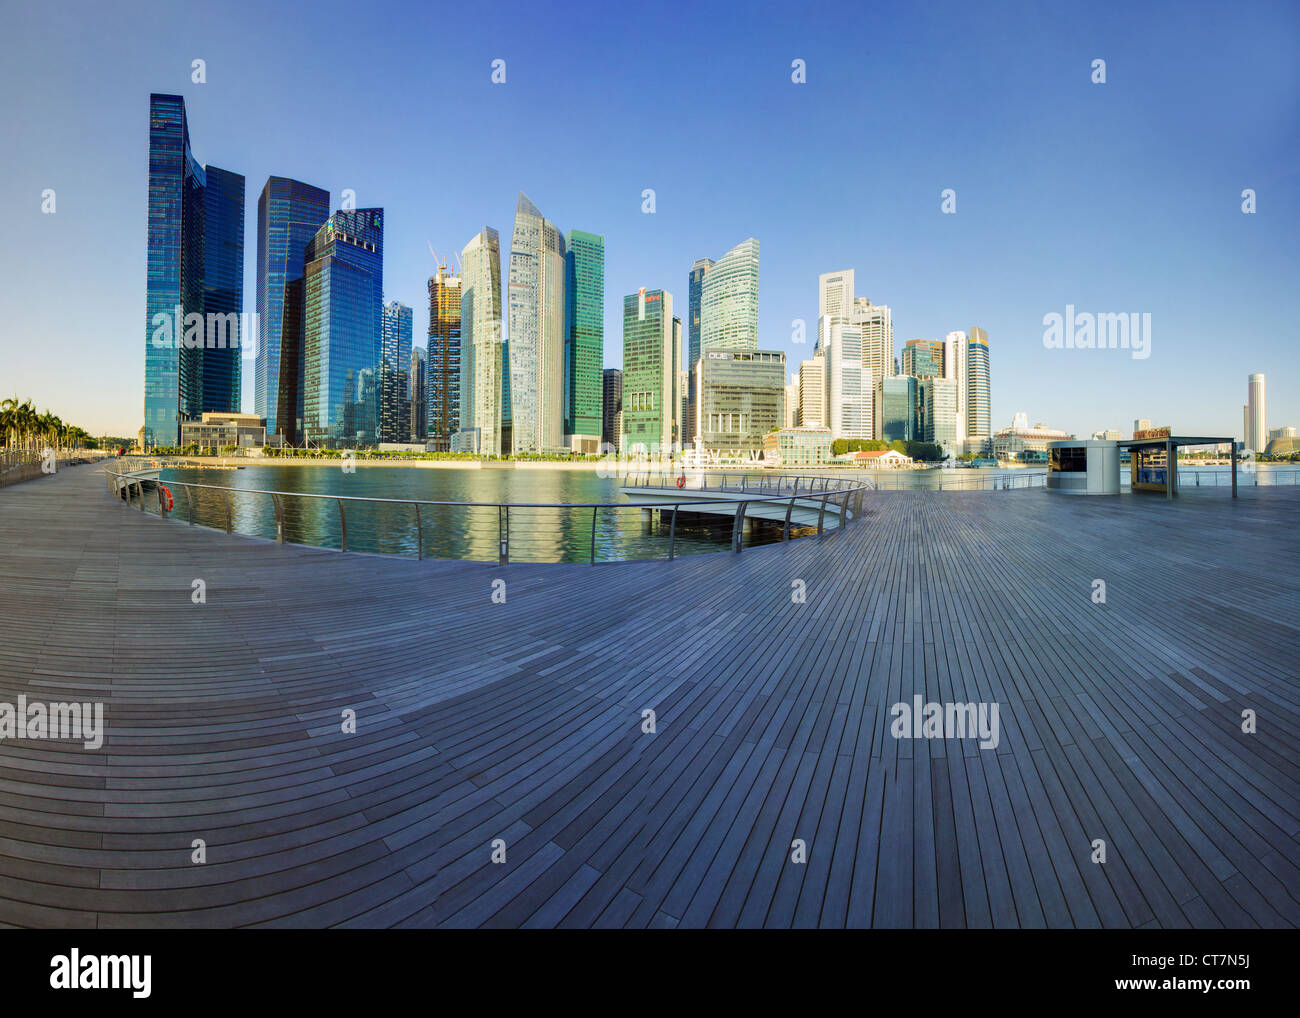 South East Asia, Singapore, Financial Centre and Marina Bay - Stock Image